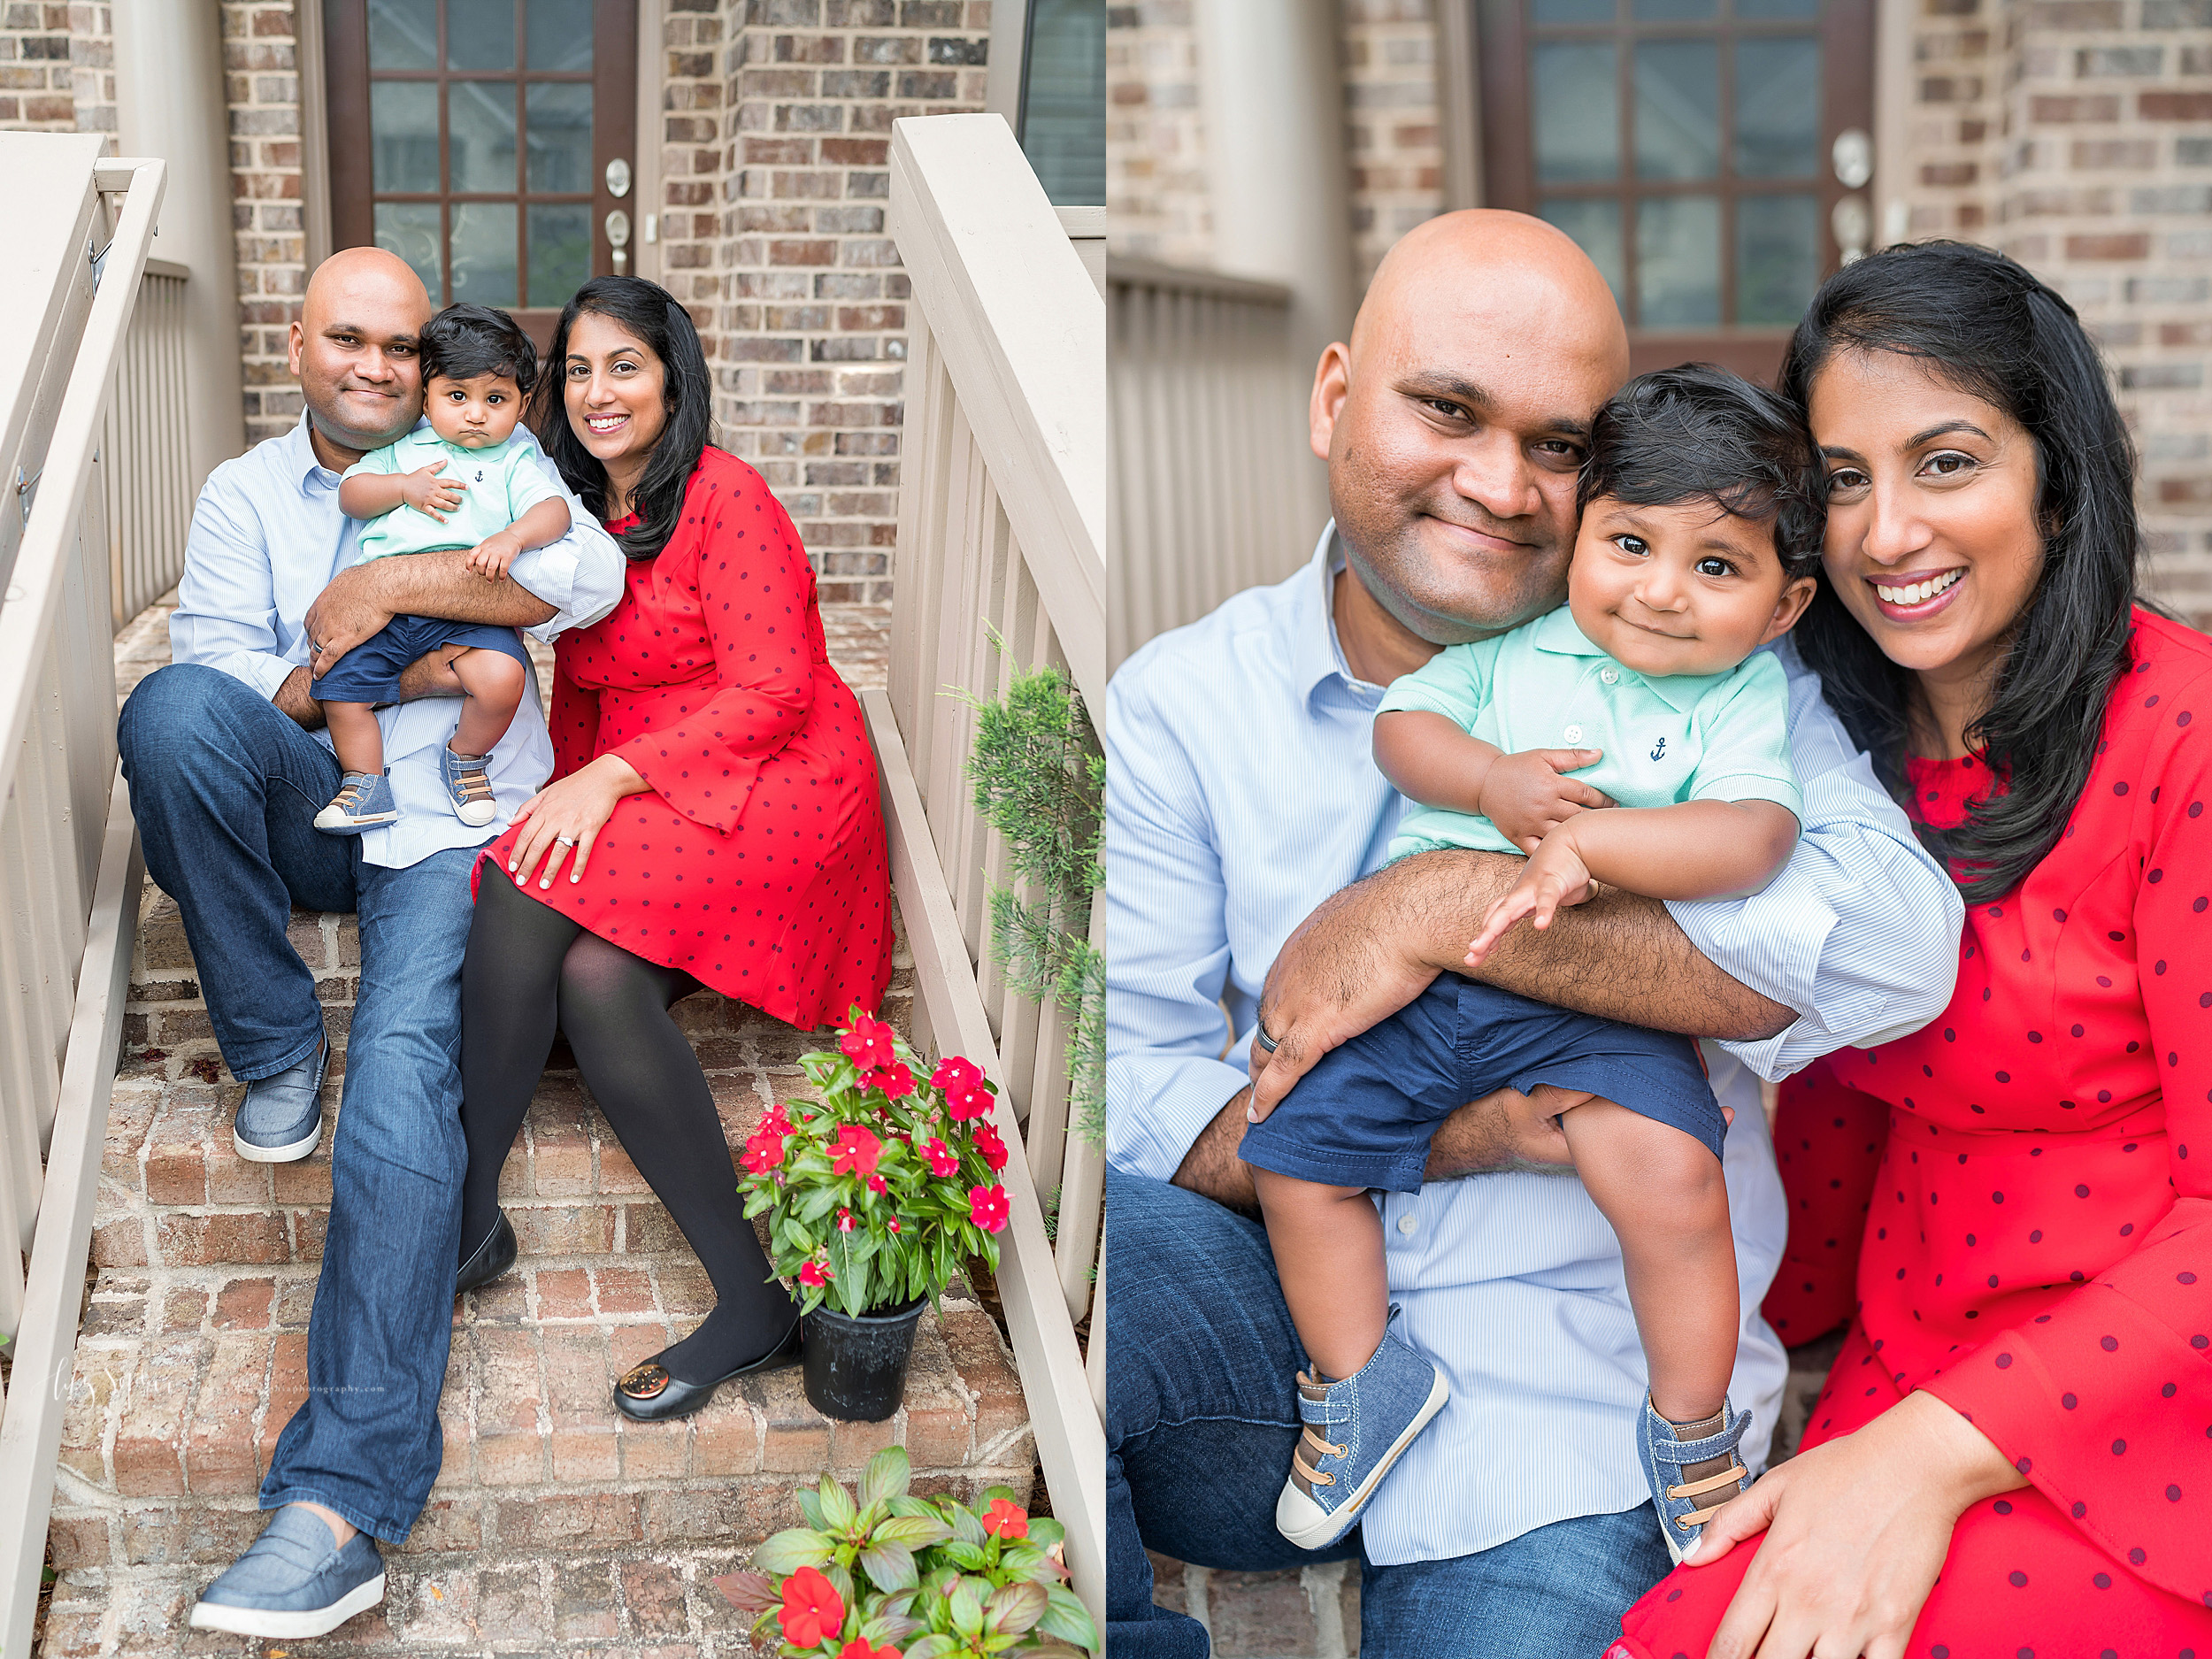 atlanta-brookhaven-east-cobb-marietta-candler-park-sandy-springs-buckhead-virginia-highlands-west-end-decatur-lily-sophia-photography-in-home-lifestyle-session-eight-month-milestone-indian-family_1675.jpg